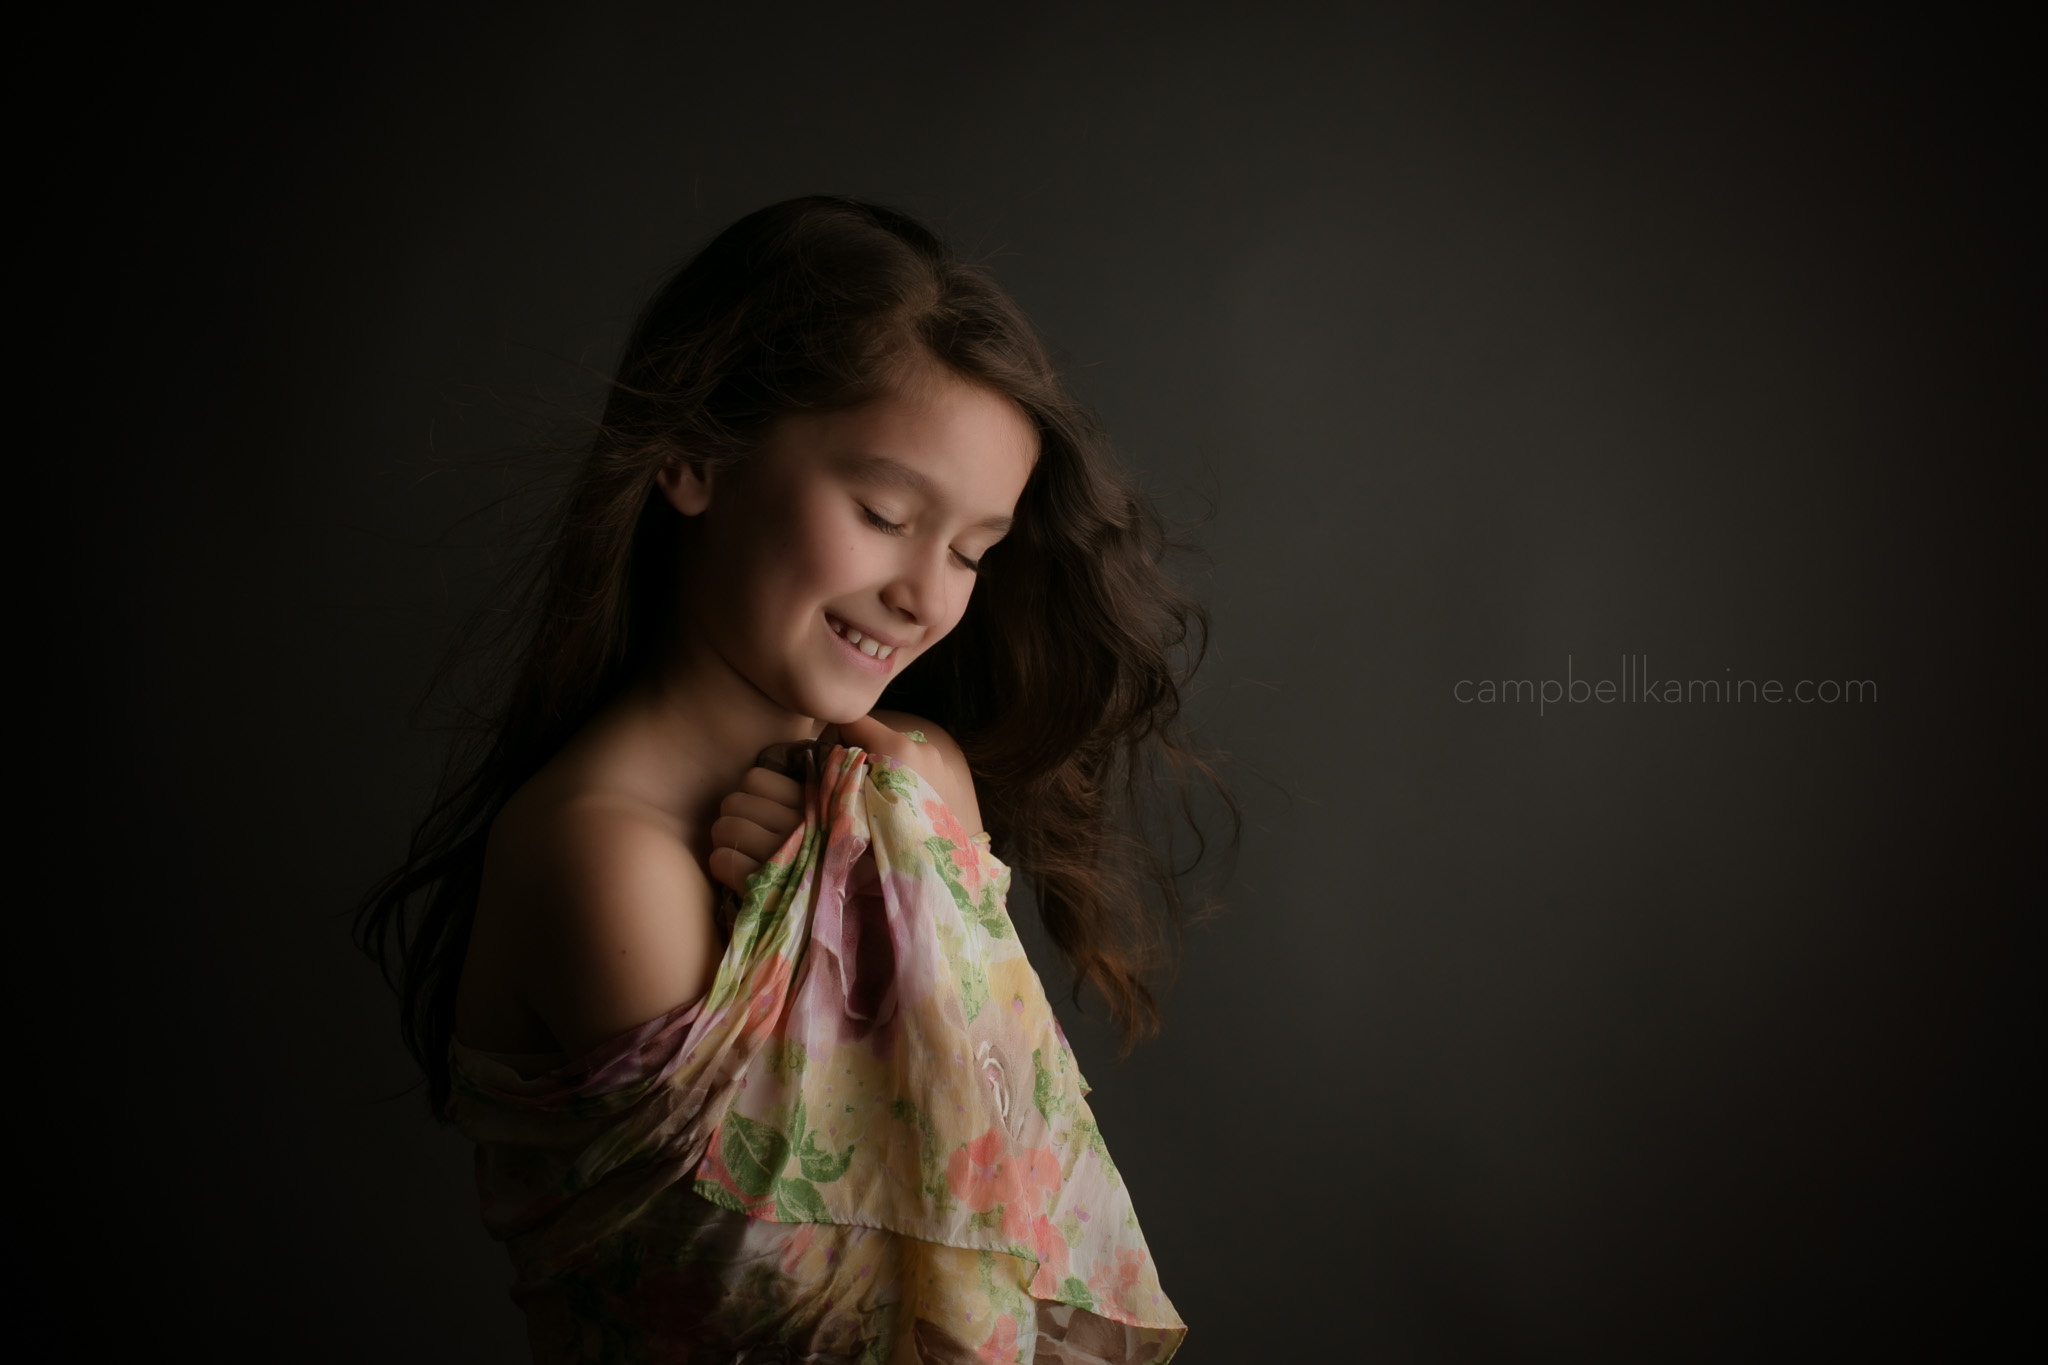 Lily | Campbell Kamine Photography -5.jpg